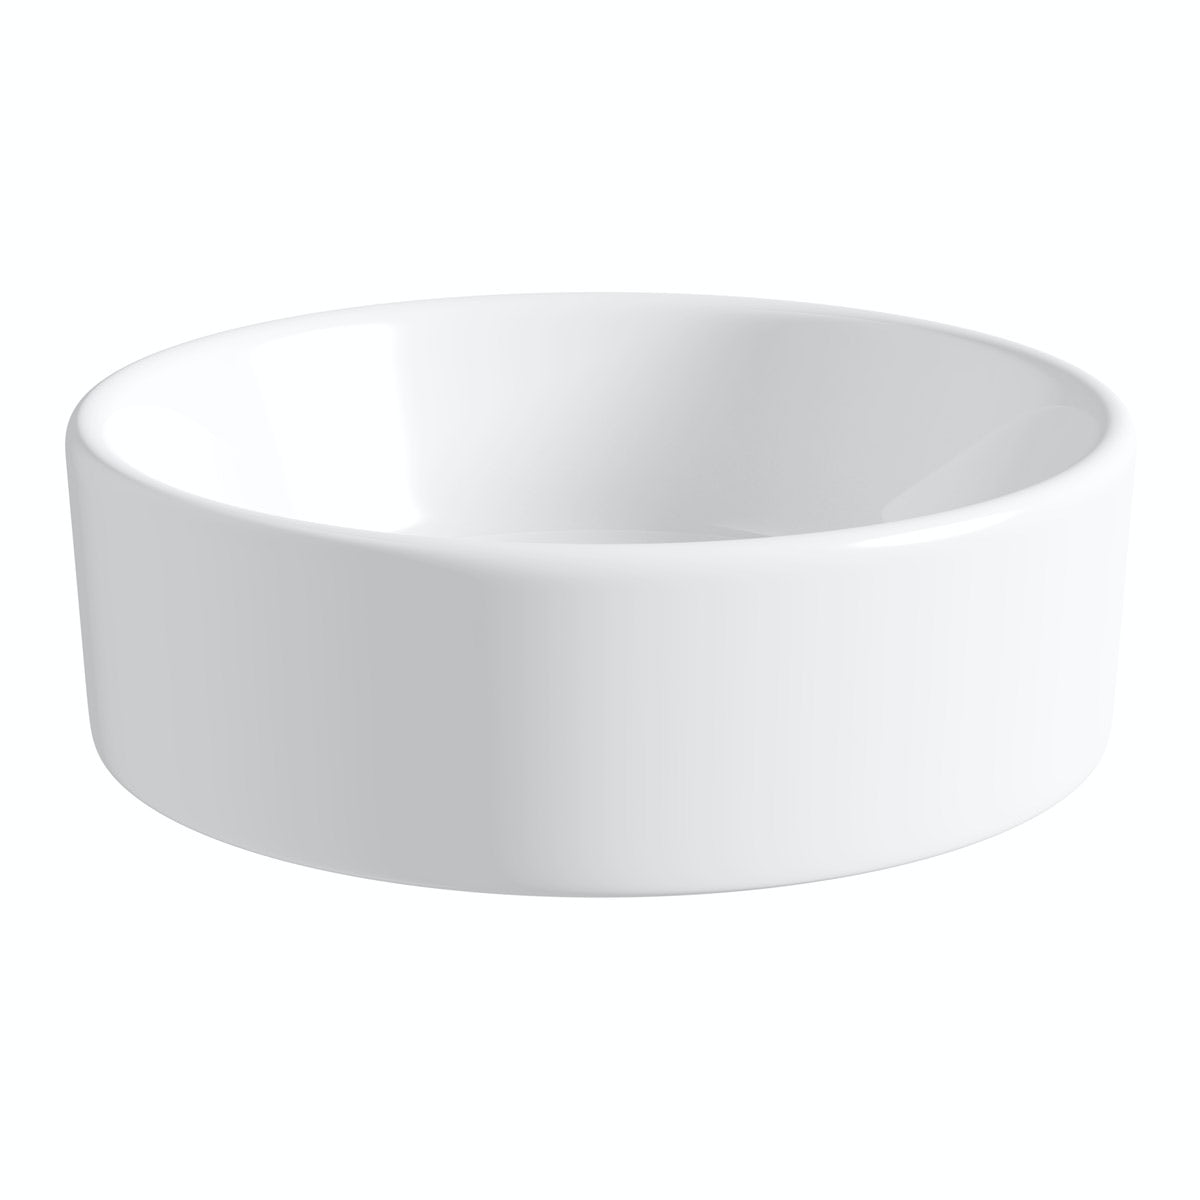 Orchard Calhoun counter top basin 385mm